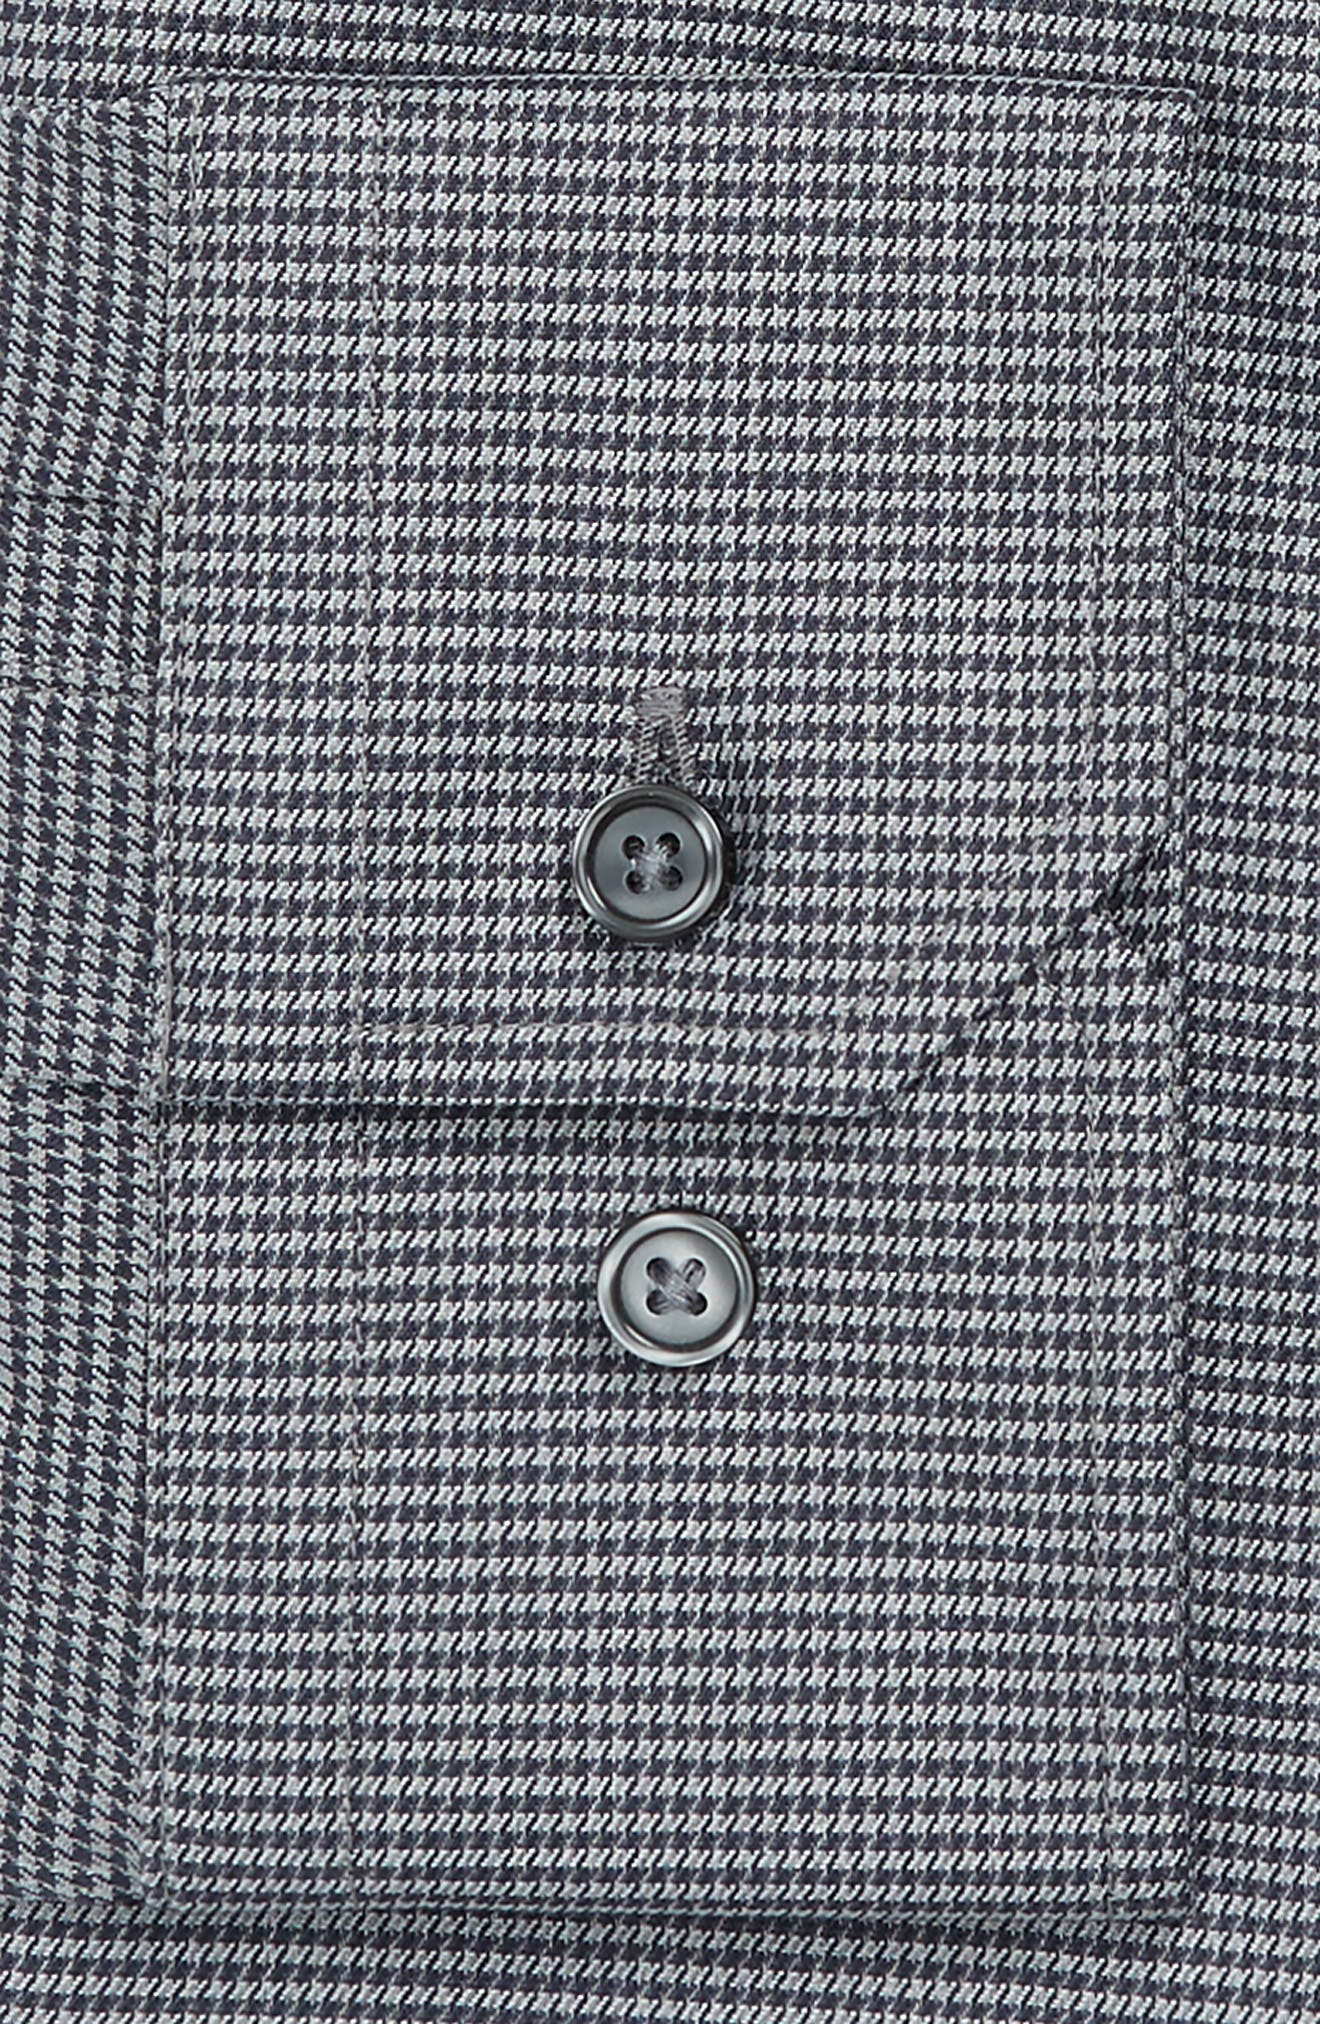 Trim Fit No-Iron Micro Houndstooth Stretch Dress Shirt,                             Alternate thumbnail 4, color,                             021